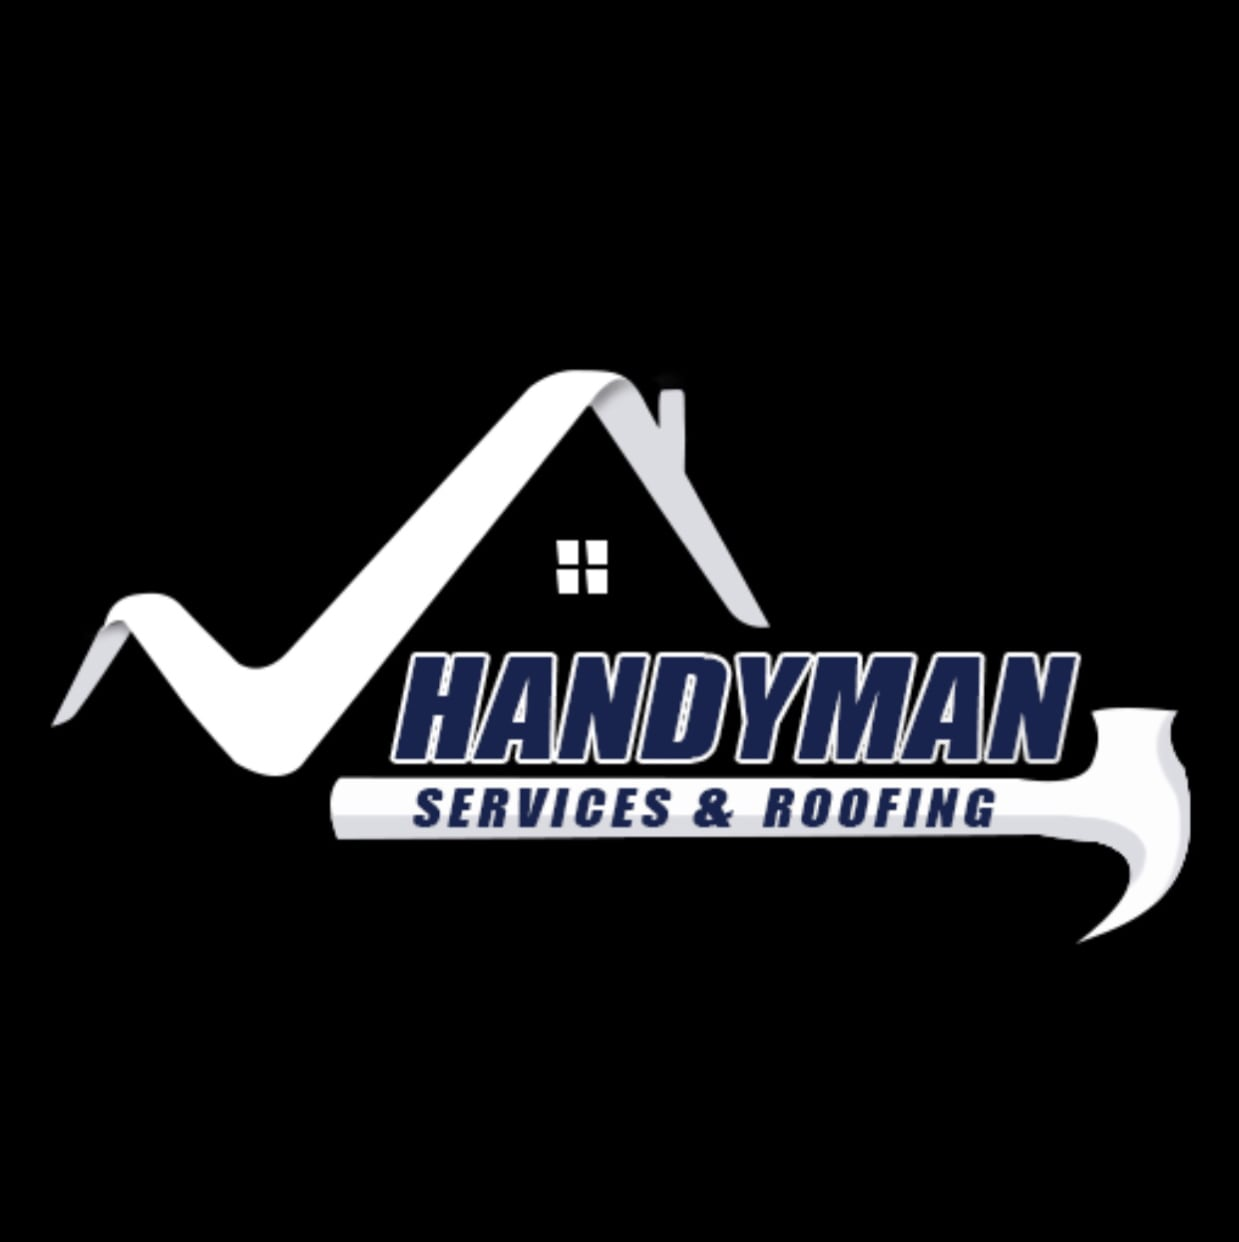 Handyman Services and Roofing